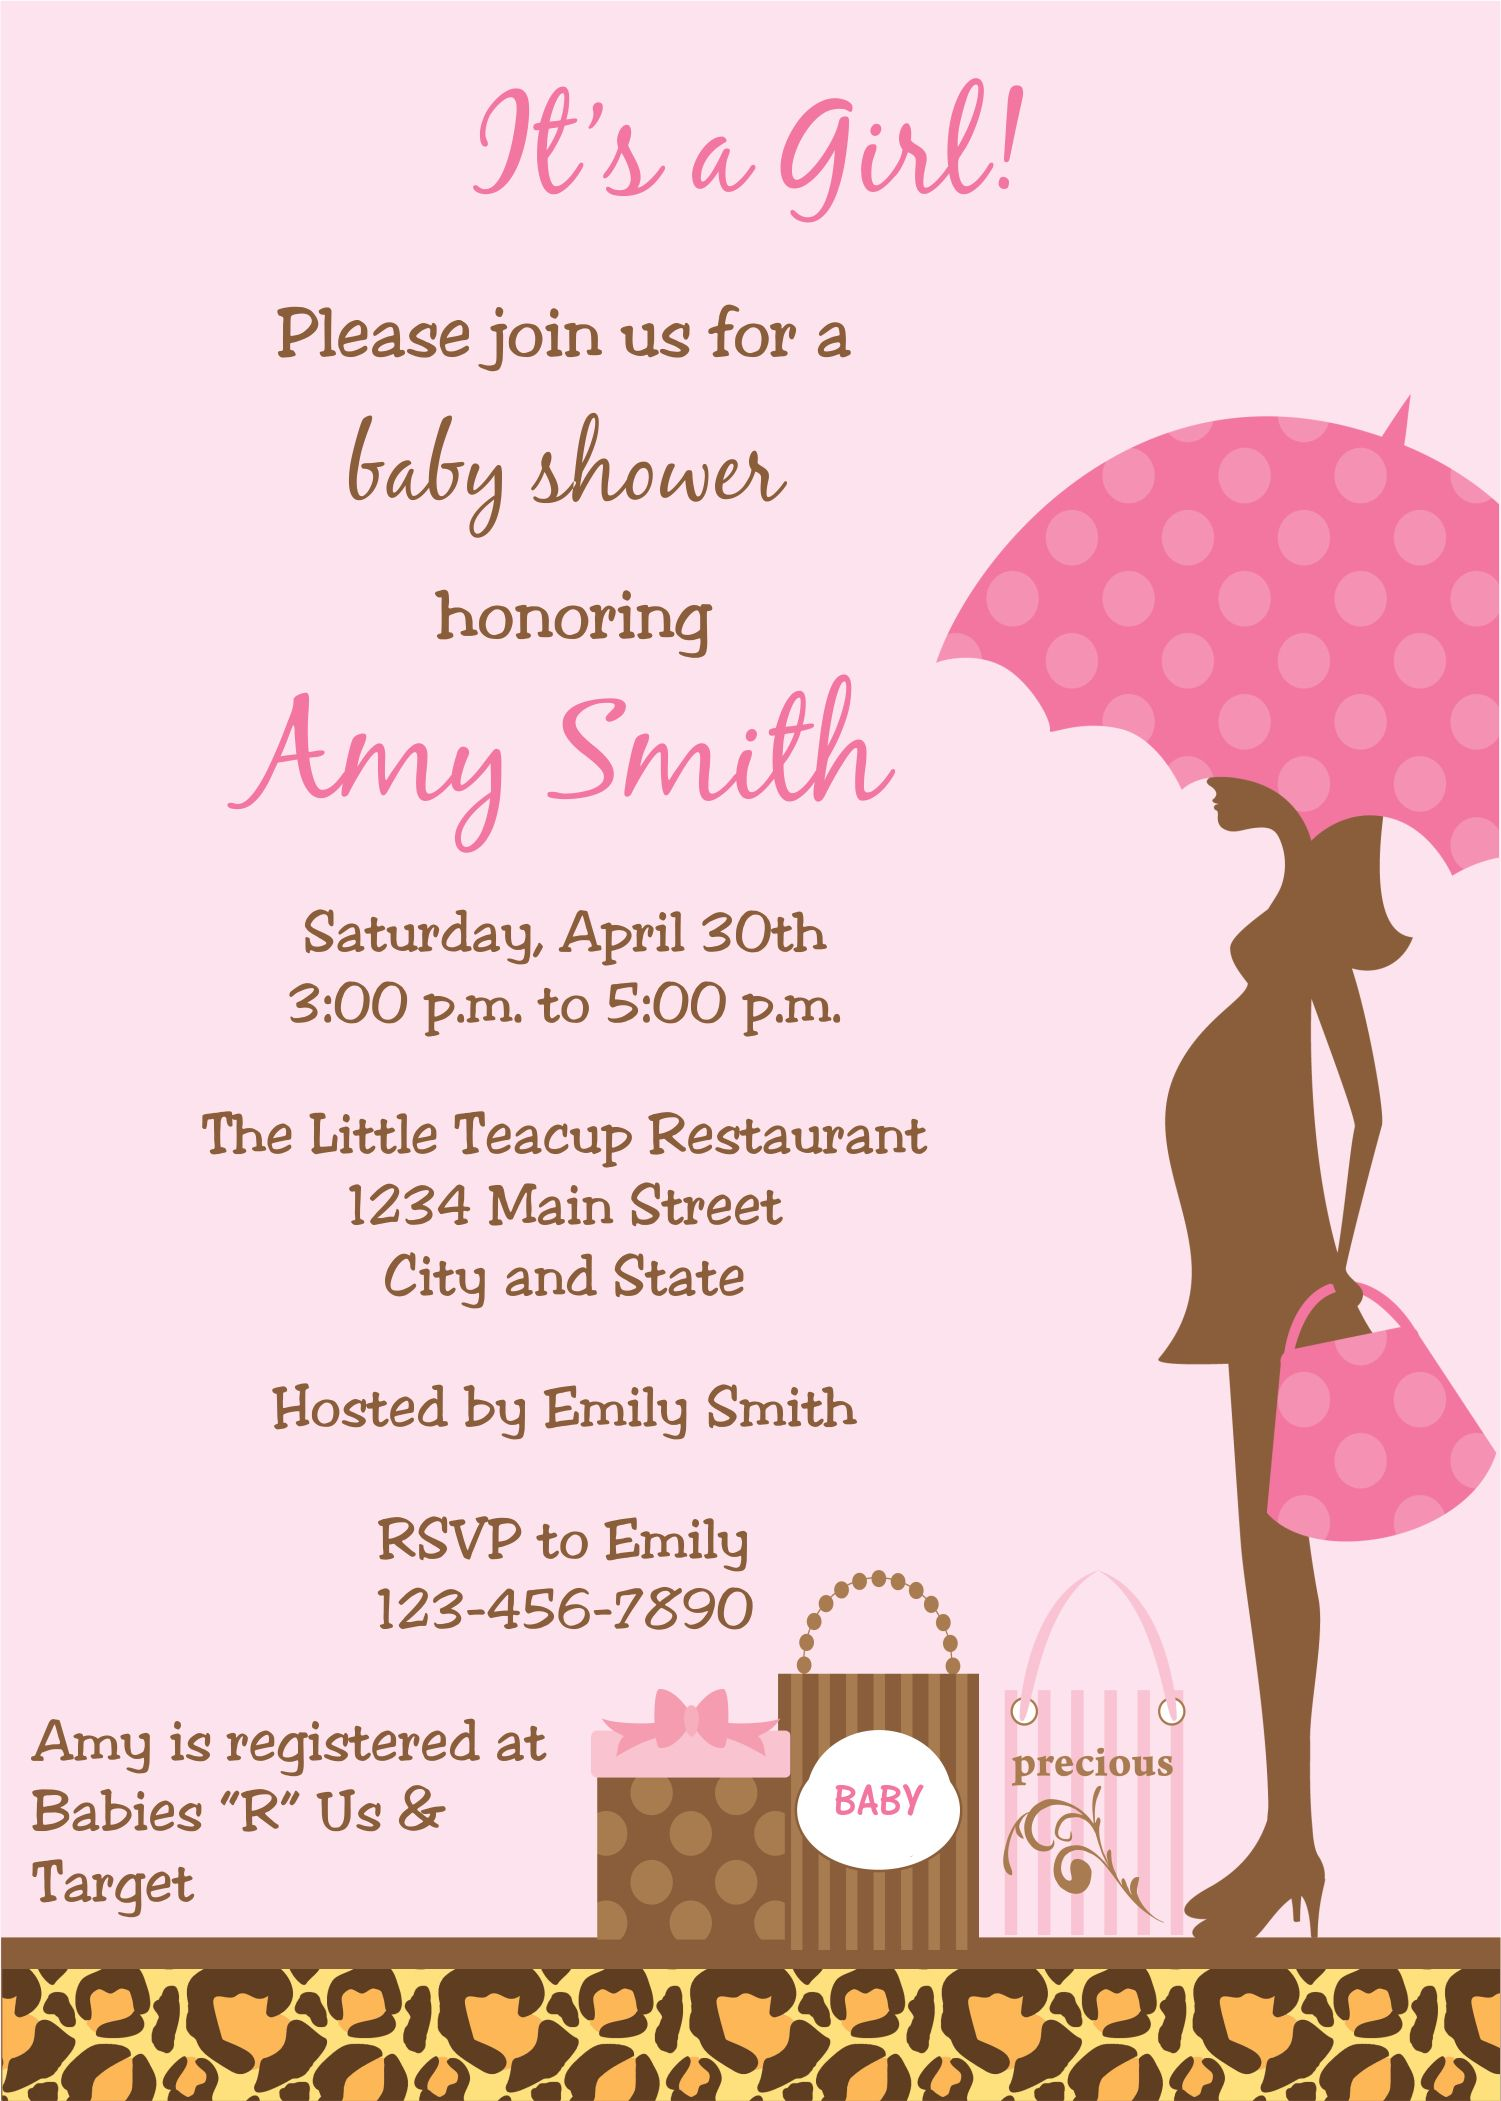 Leopard Print Expecting Mom Baby Shower Invitations At Thebusybeestudioscom